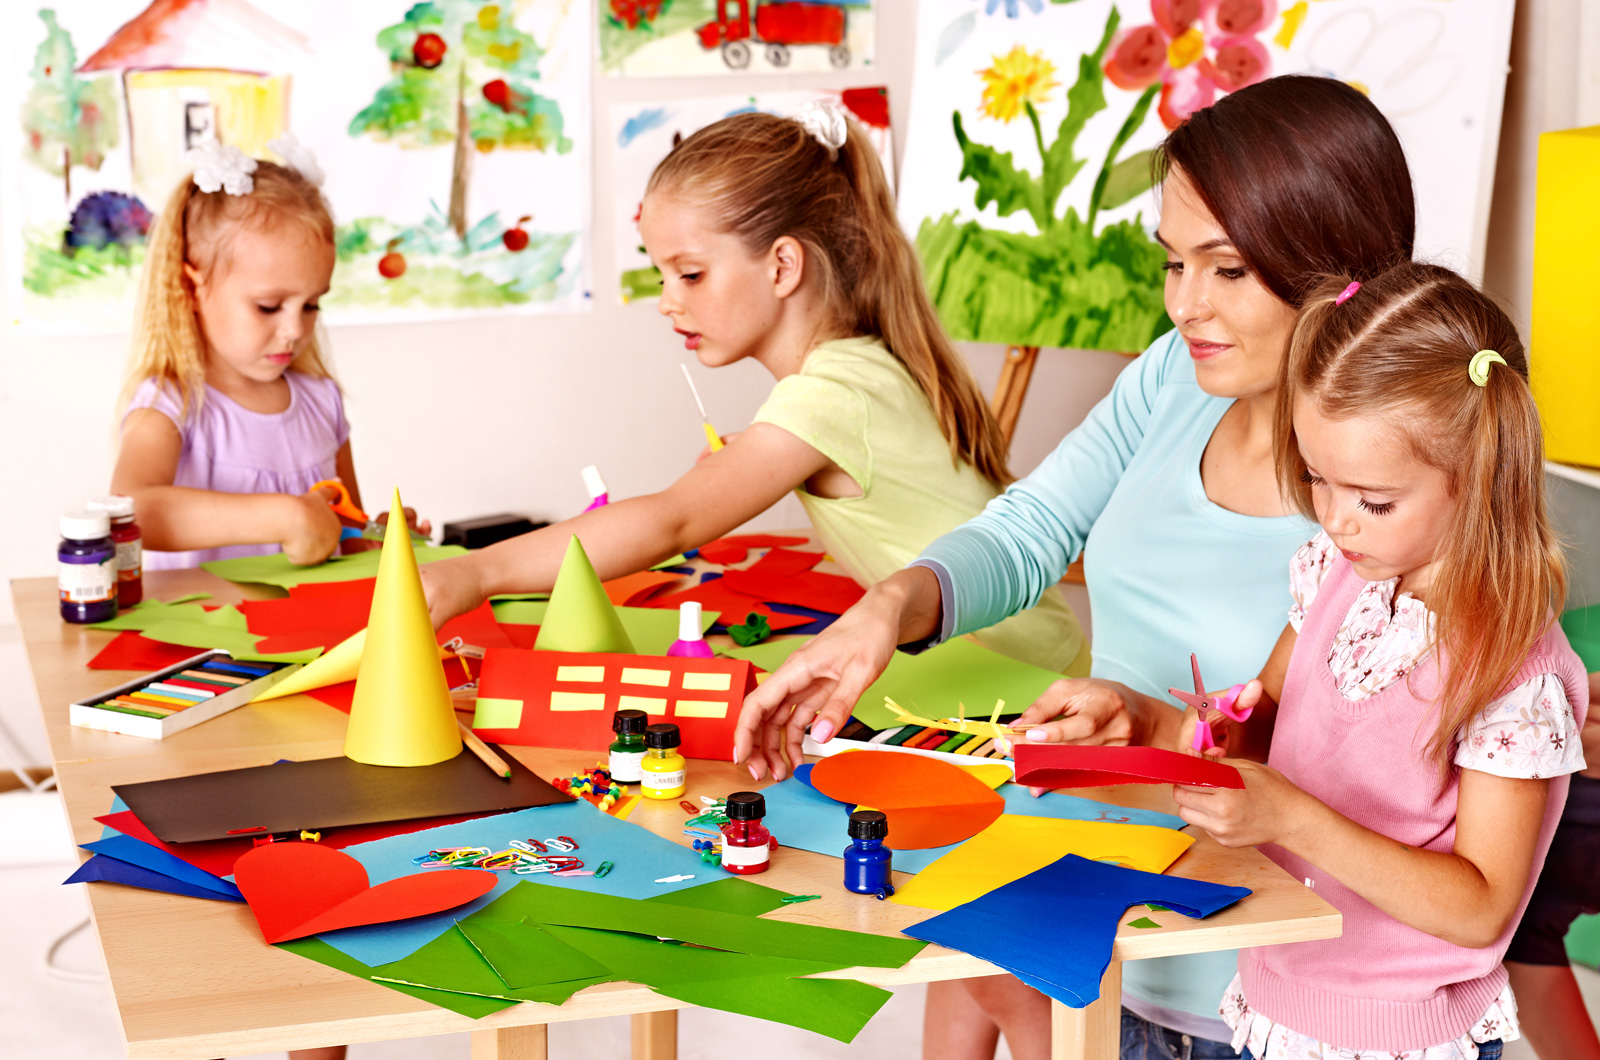 Imparting Valuable Social Skills to Preschool Children